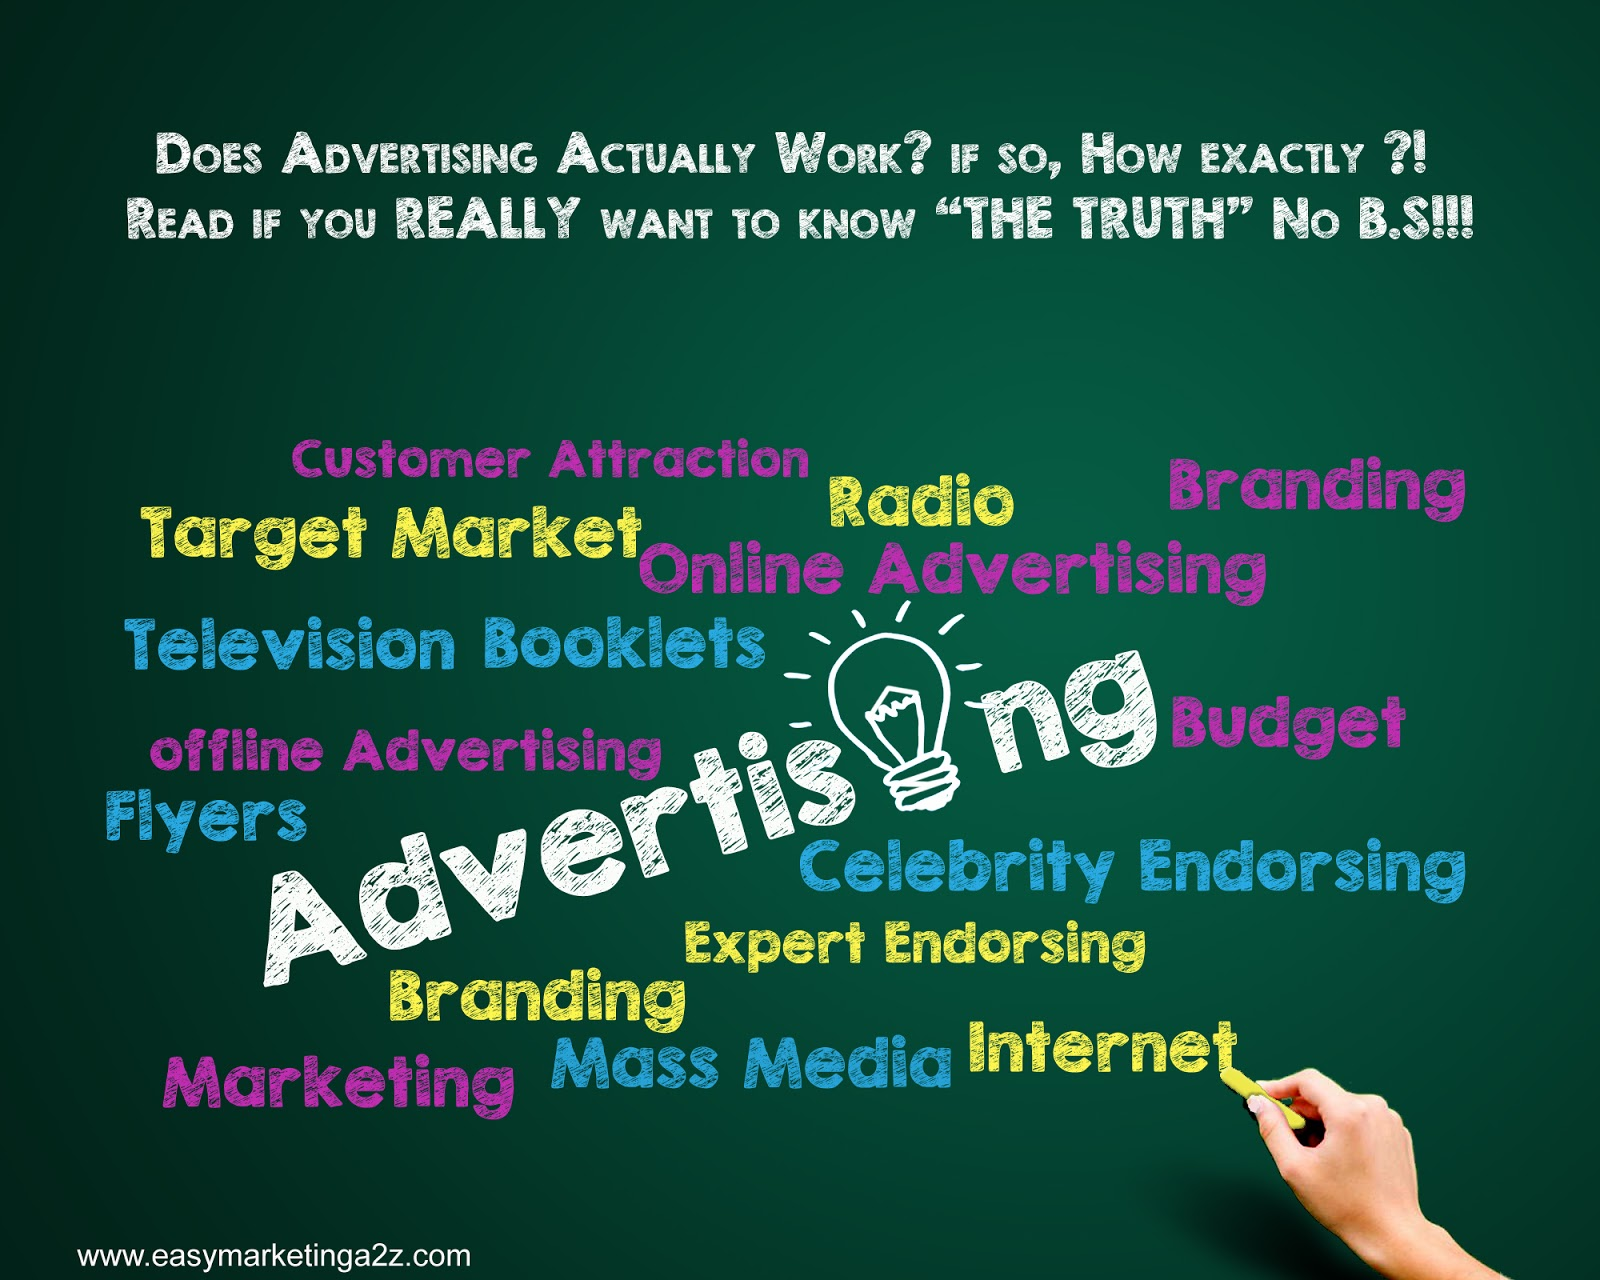 how does advertising work The online advertising industry functions much like advertising in other mediums where advertisers pay publishers for space on websites to promote products the difference here is that publishers can negotiate advertising rates based on how much revenue sales ads generate for advertisers.